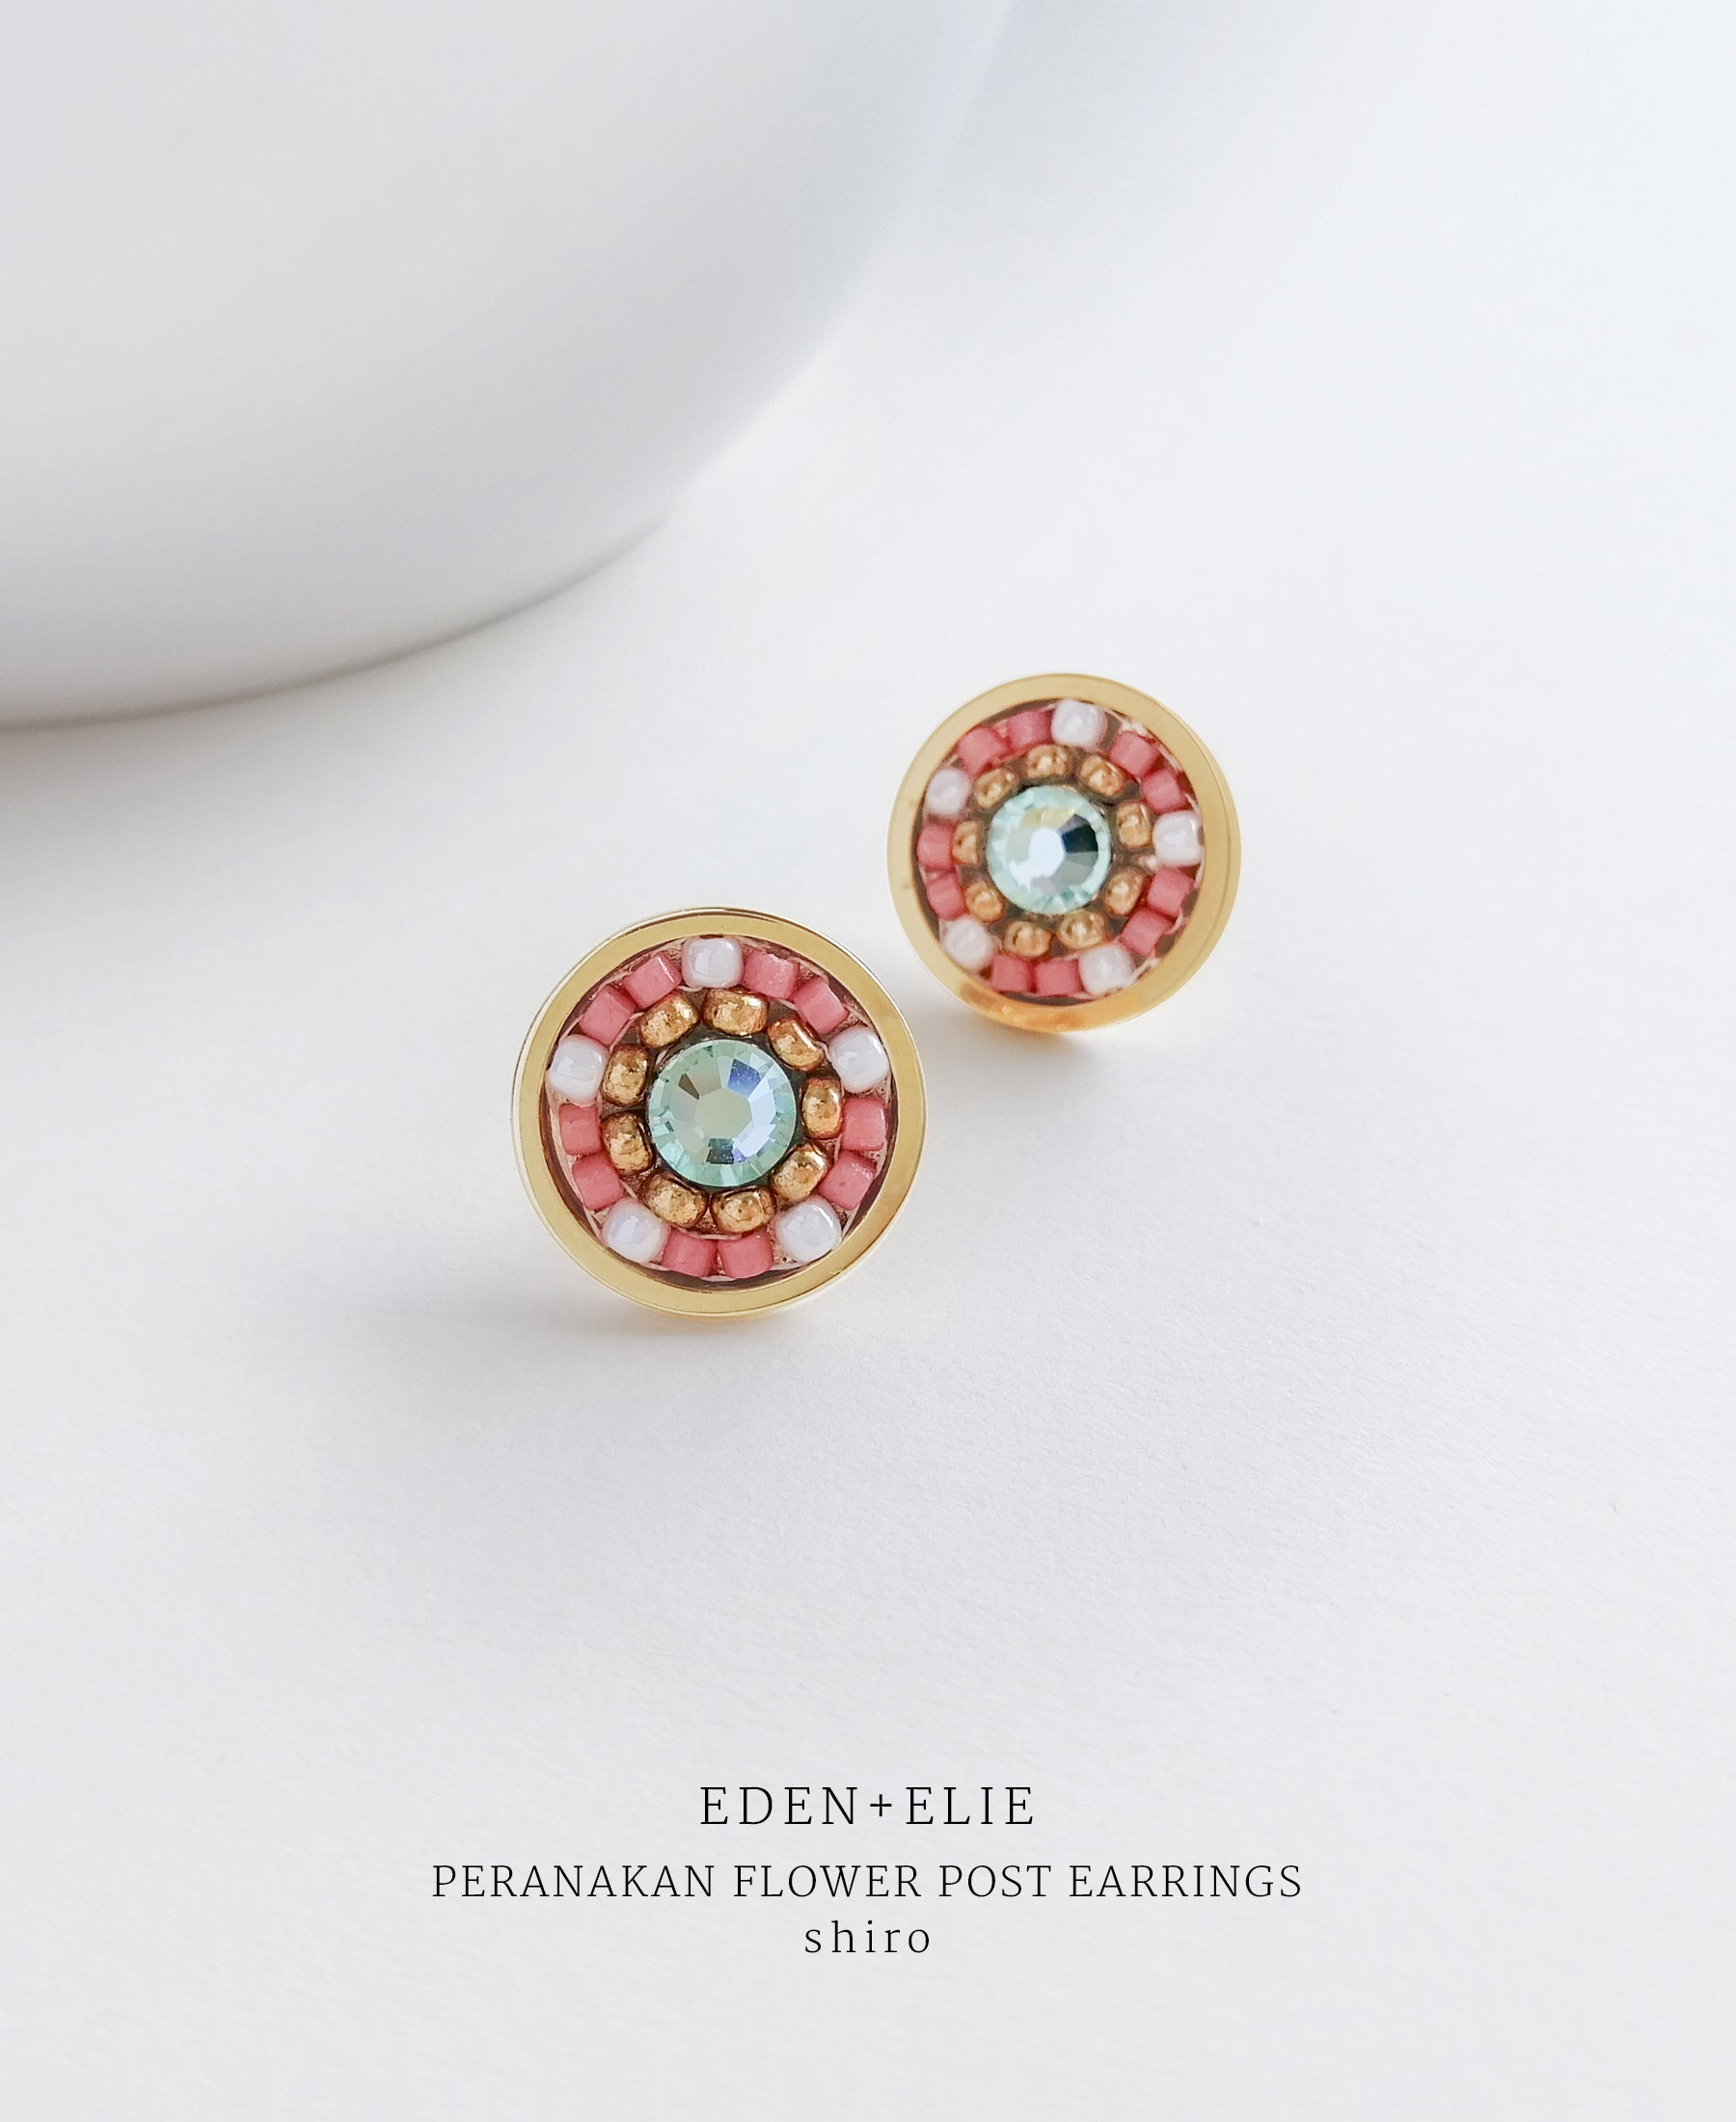 EDEN + ELIE Modern Peranakan flower stud earrings - shiro